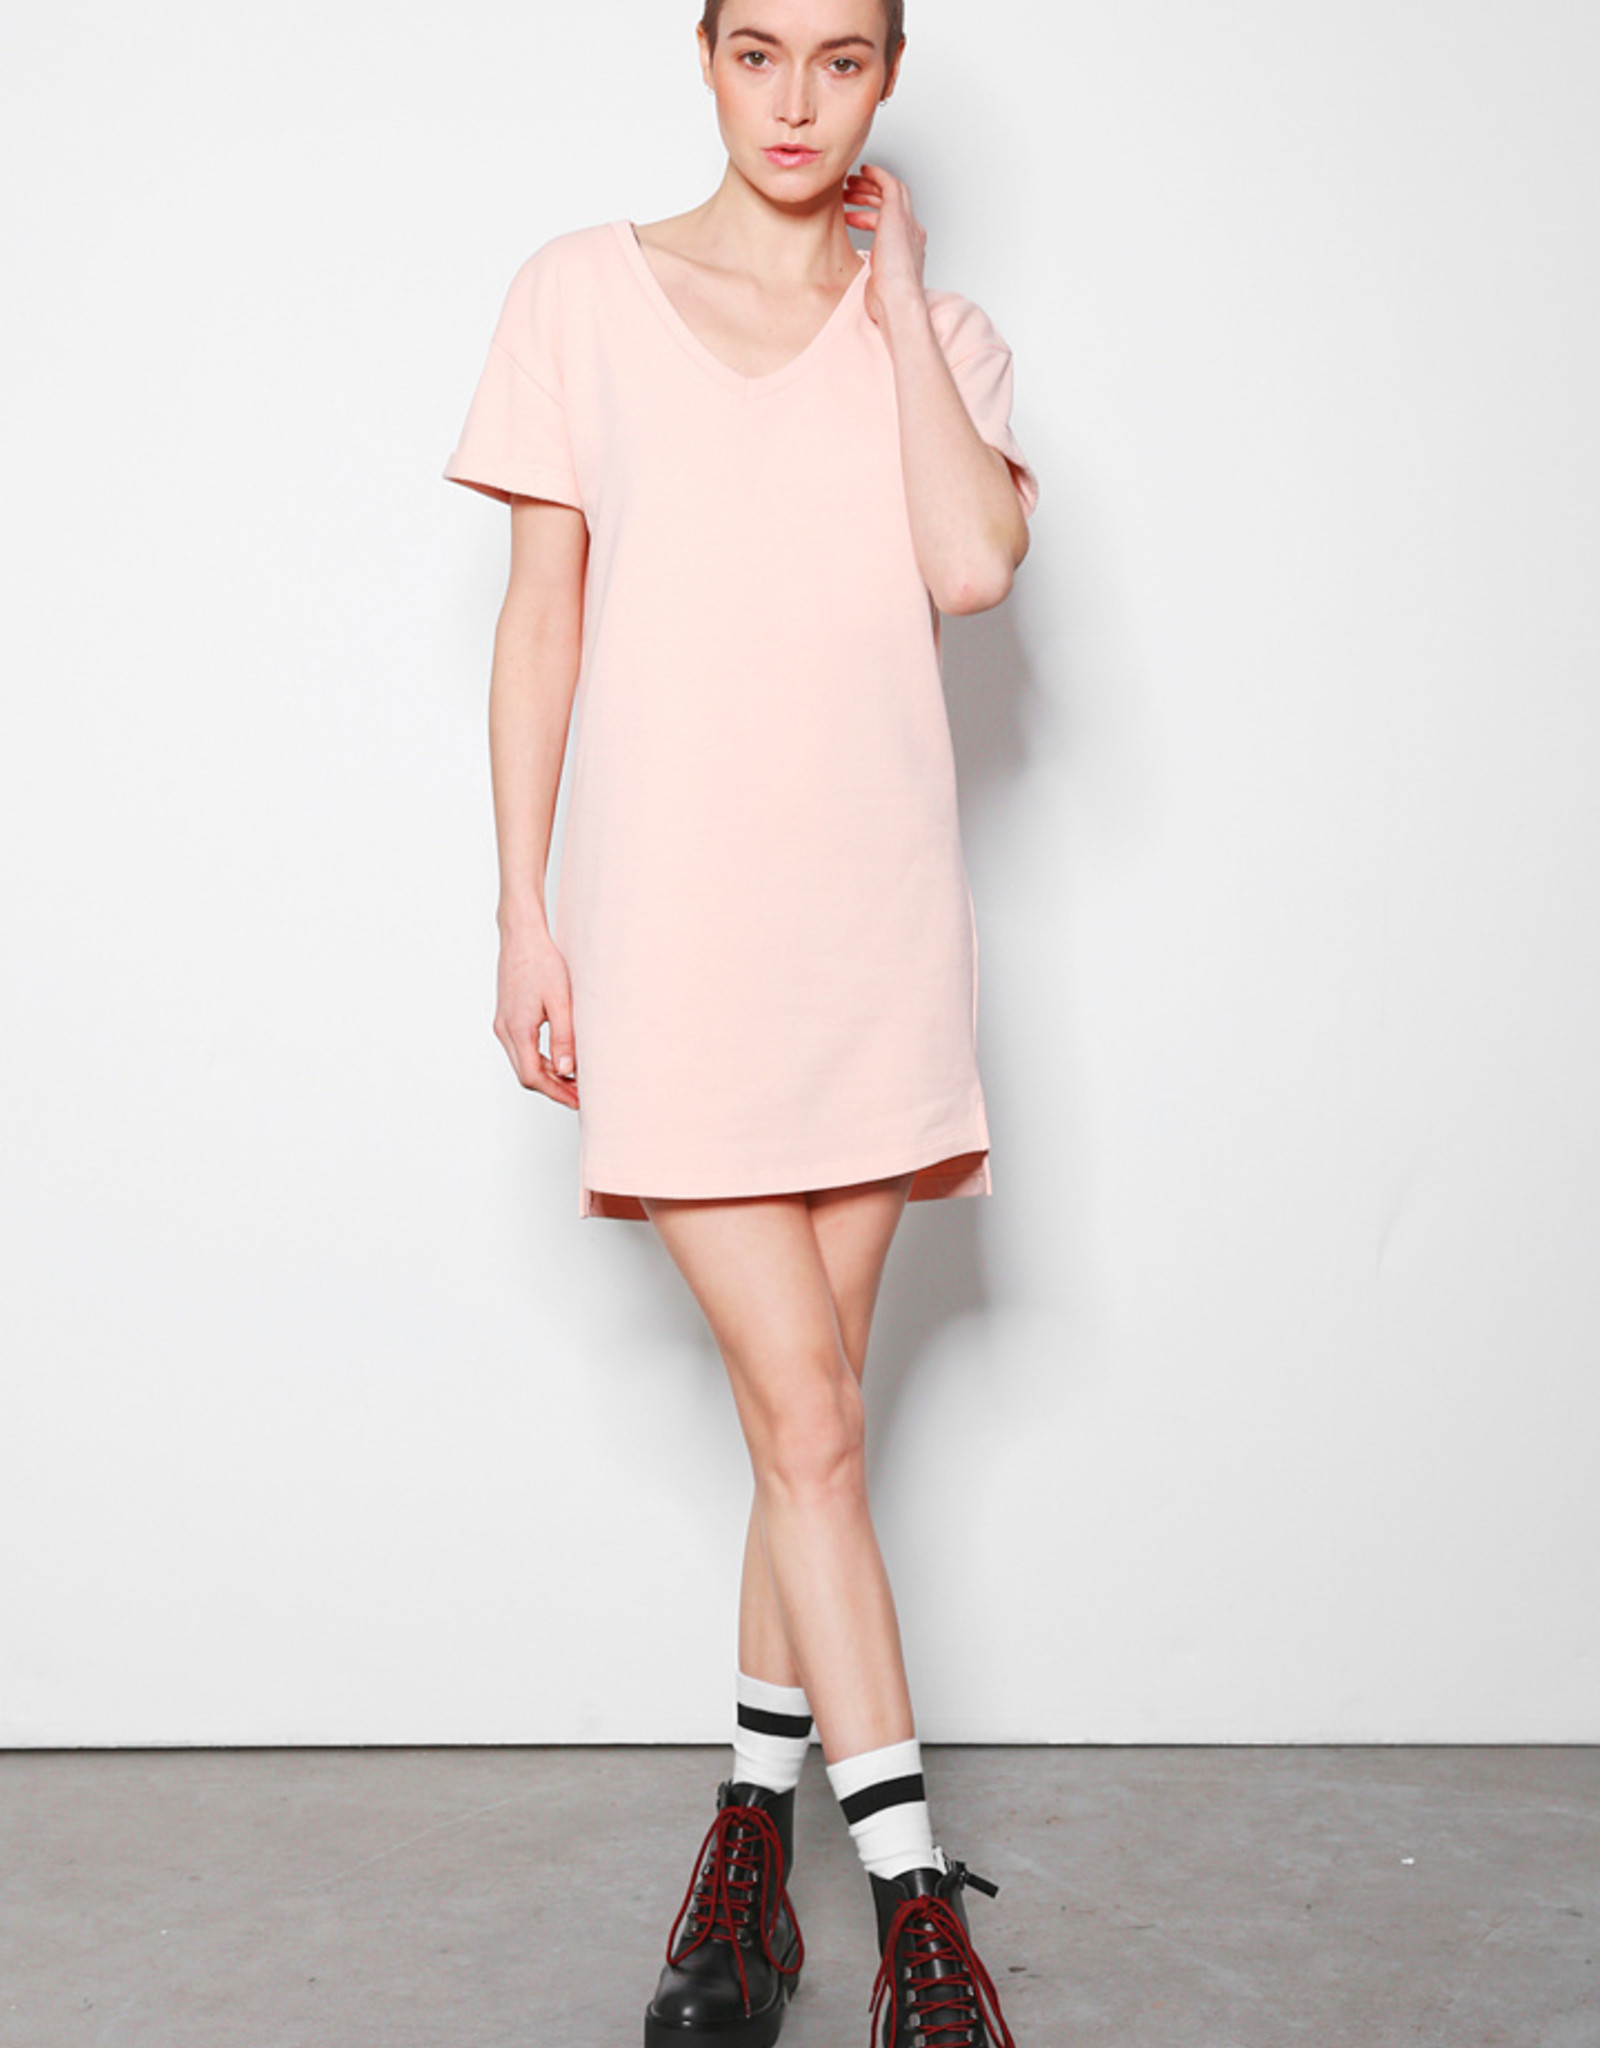 Alex dress pale brush